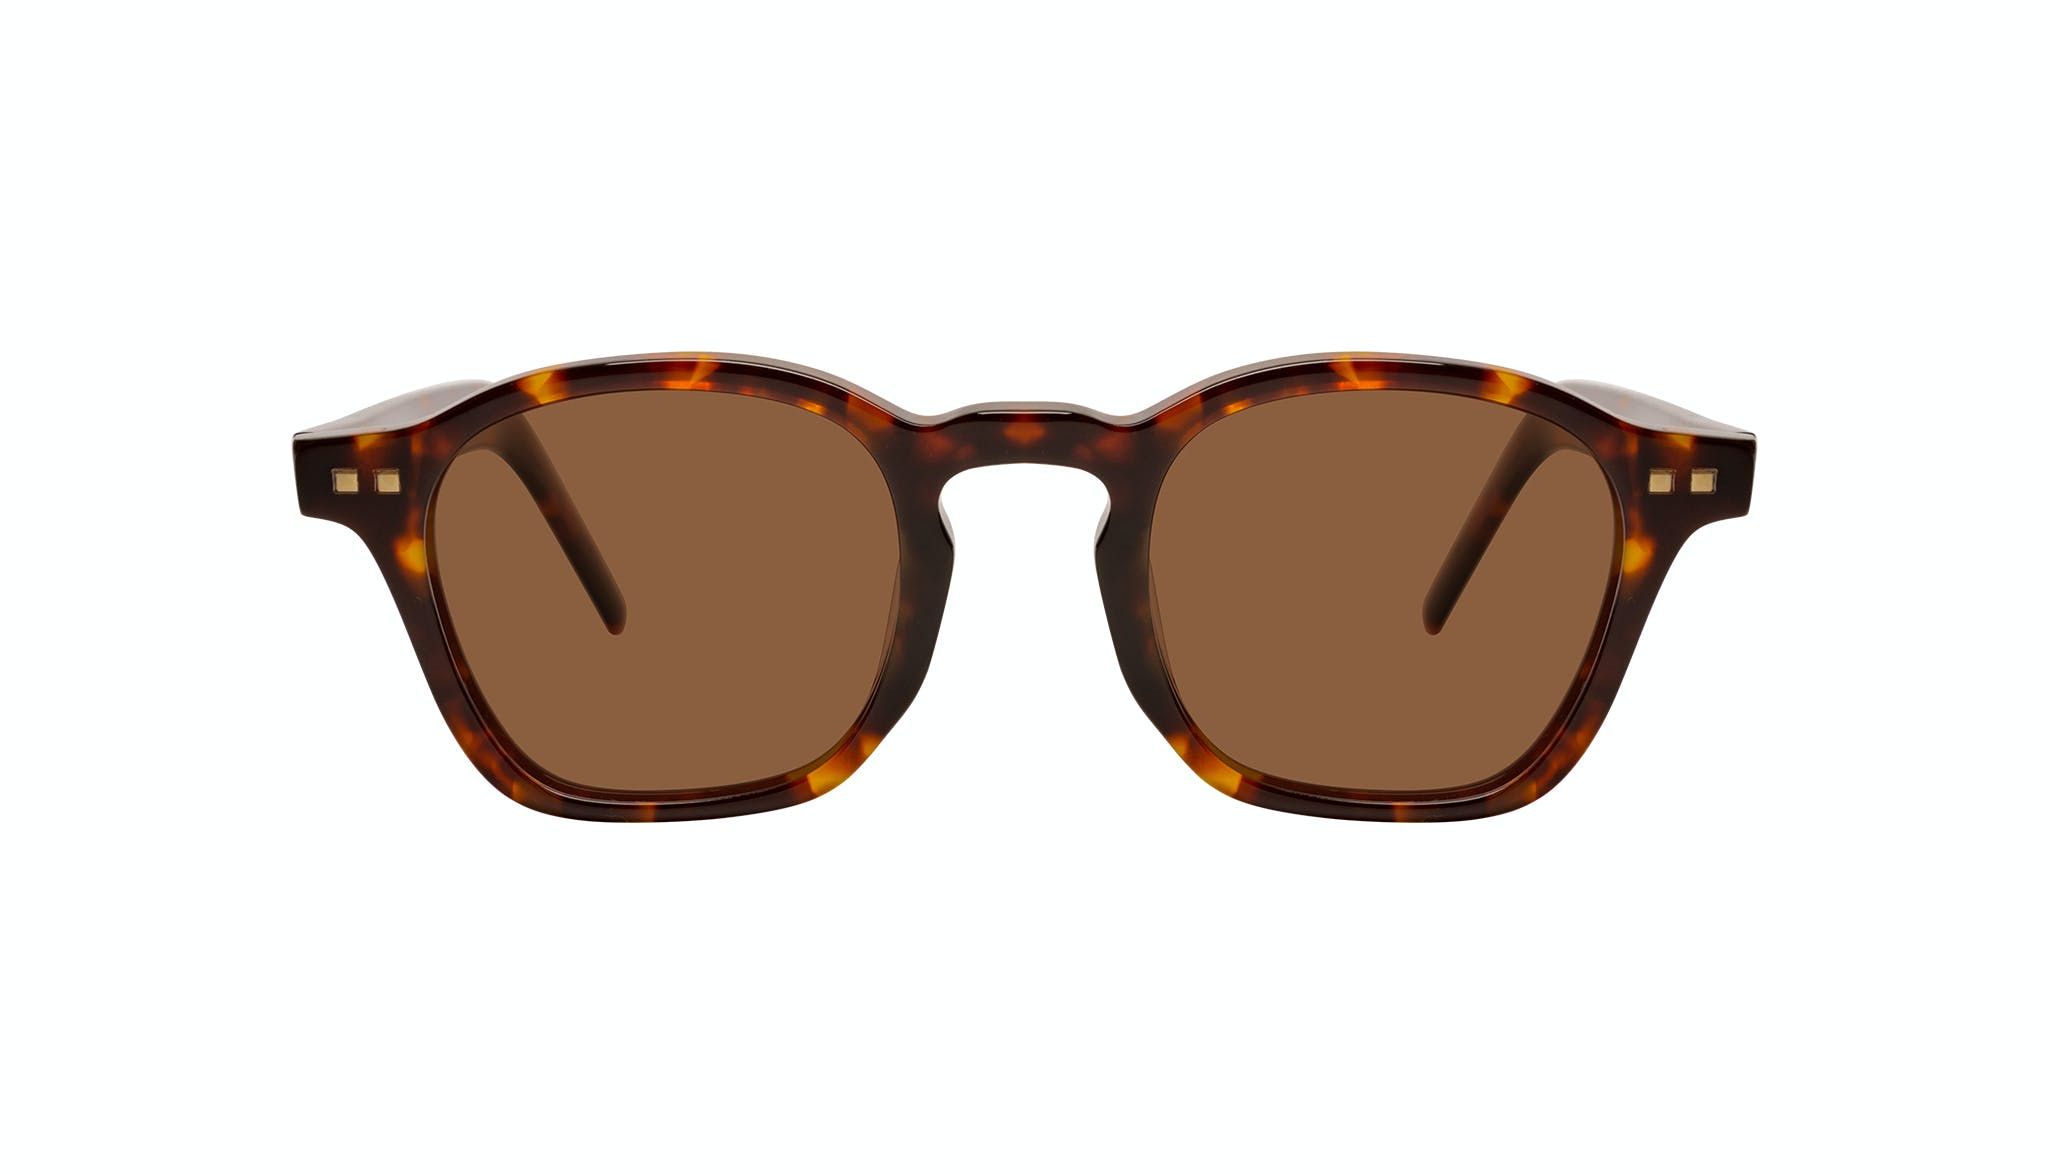 Affordable Fashion Glasses Square Sunglasses Men Brisk Tortoise